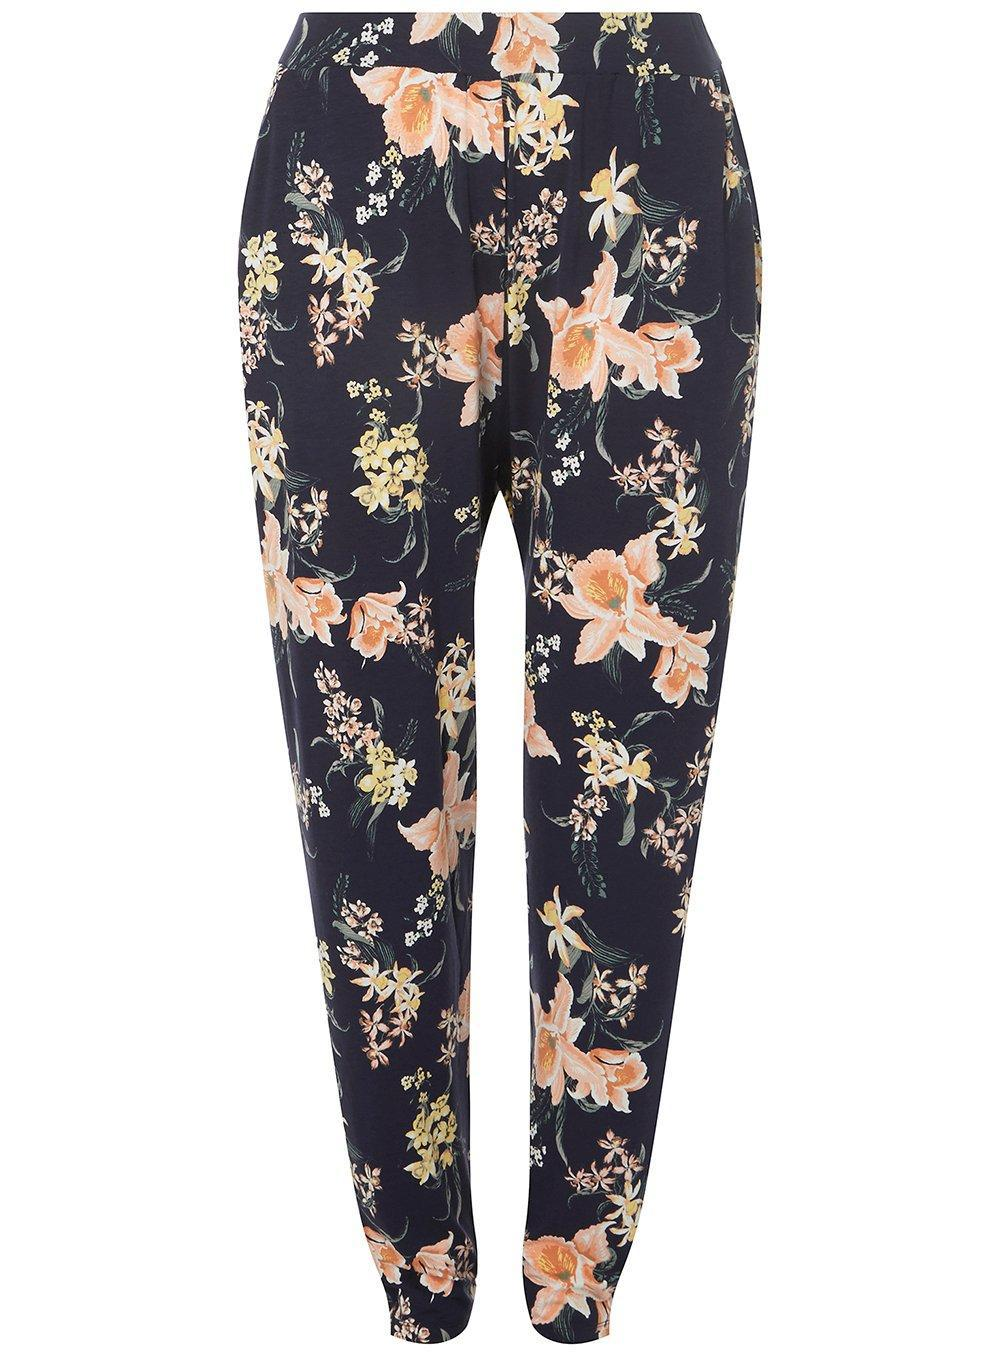 Dorothy Perkins Womens Petite Floral Joggers- Discount New Arrival Cheap Sast v4HzHw4